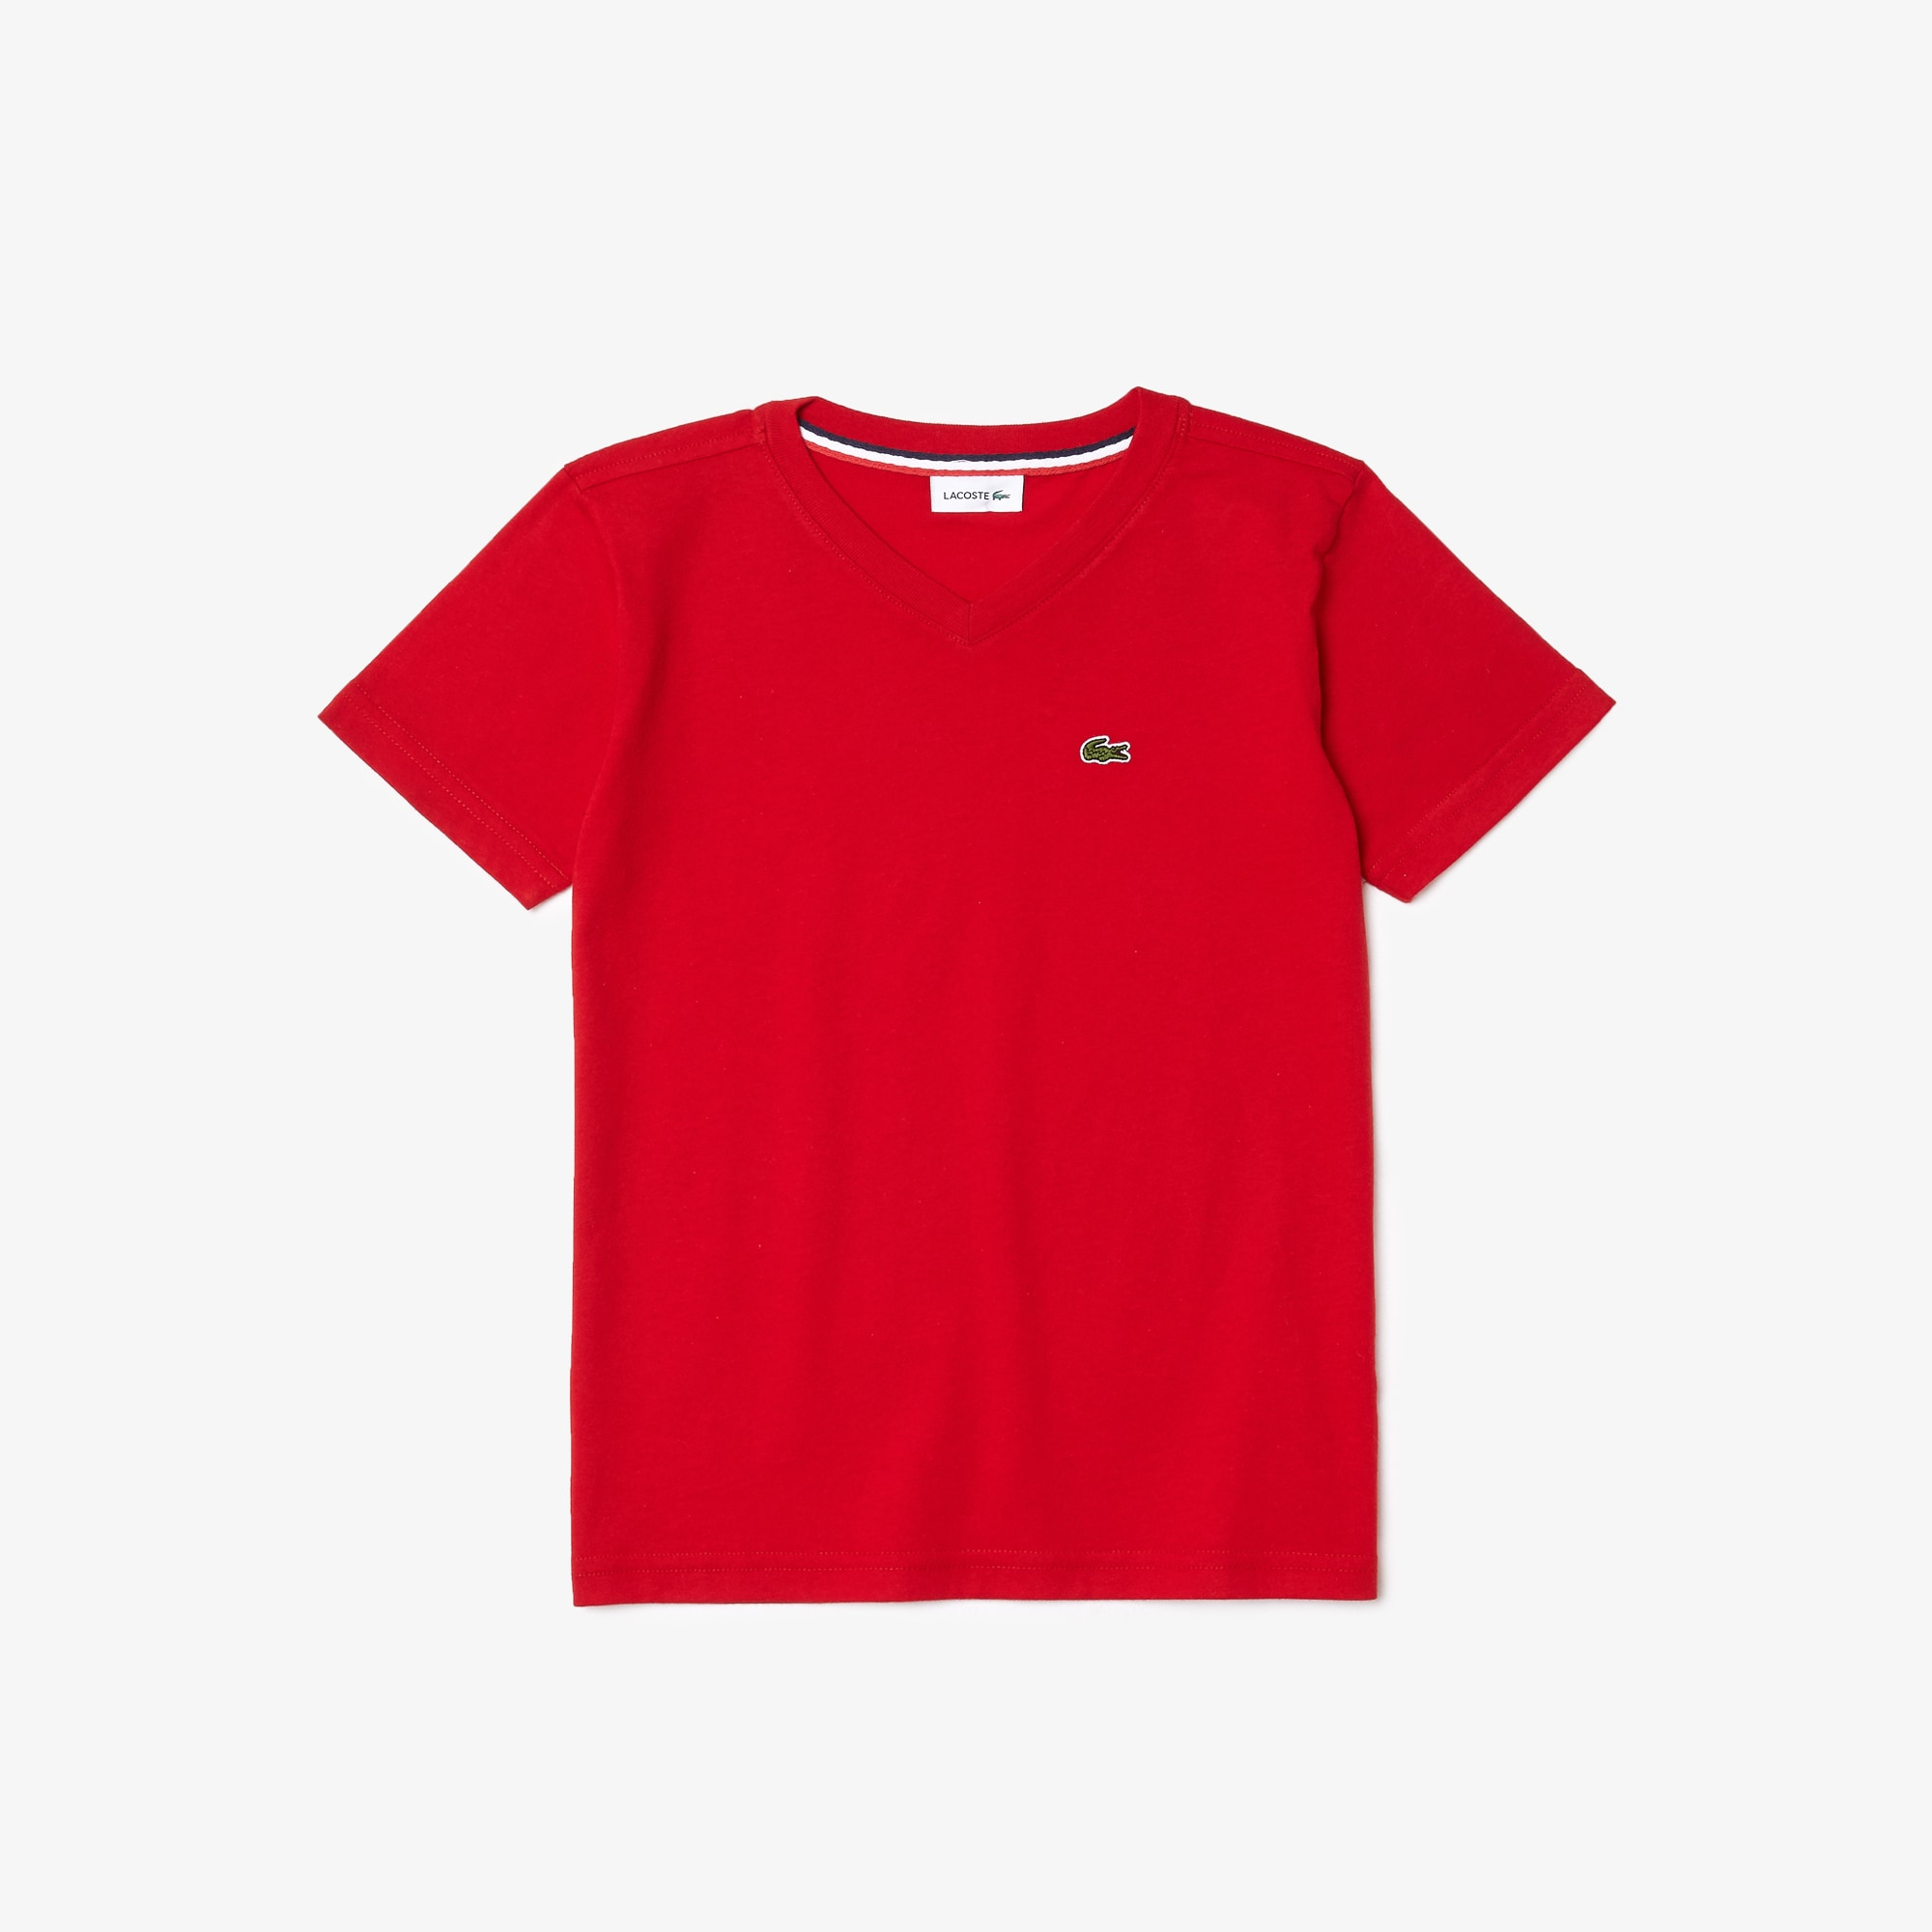 Boys' V-neck Cotton Jersey T-shirt